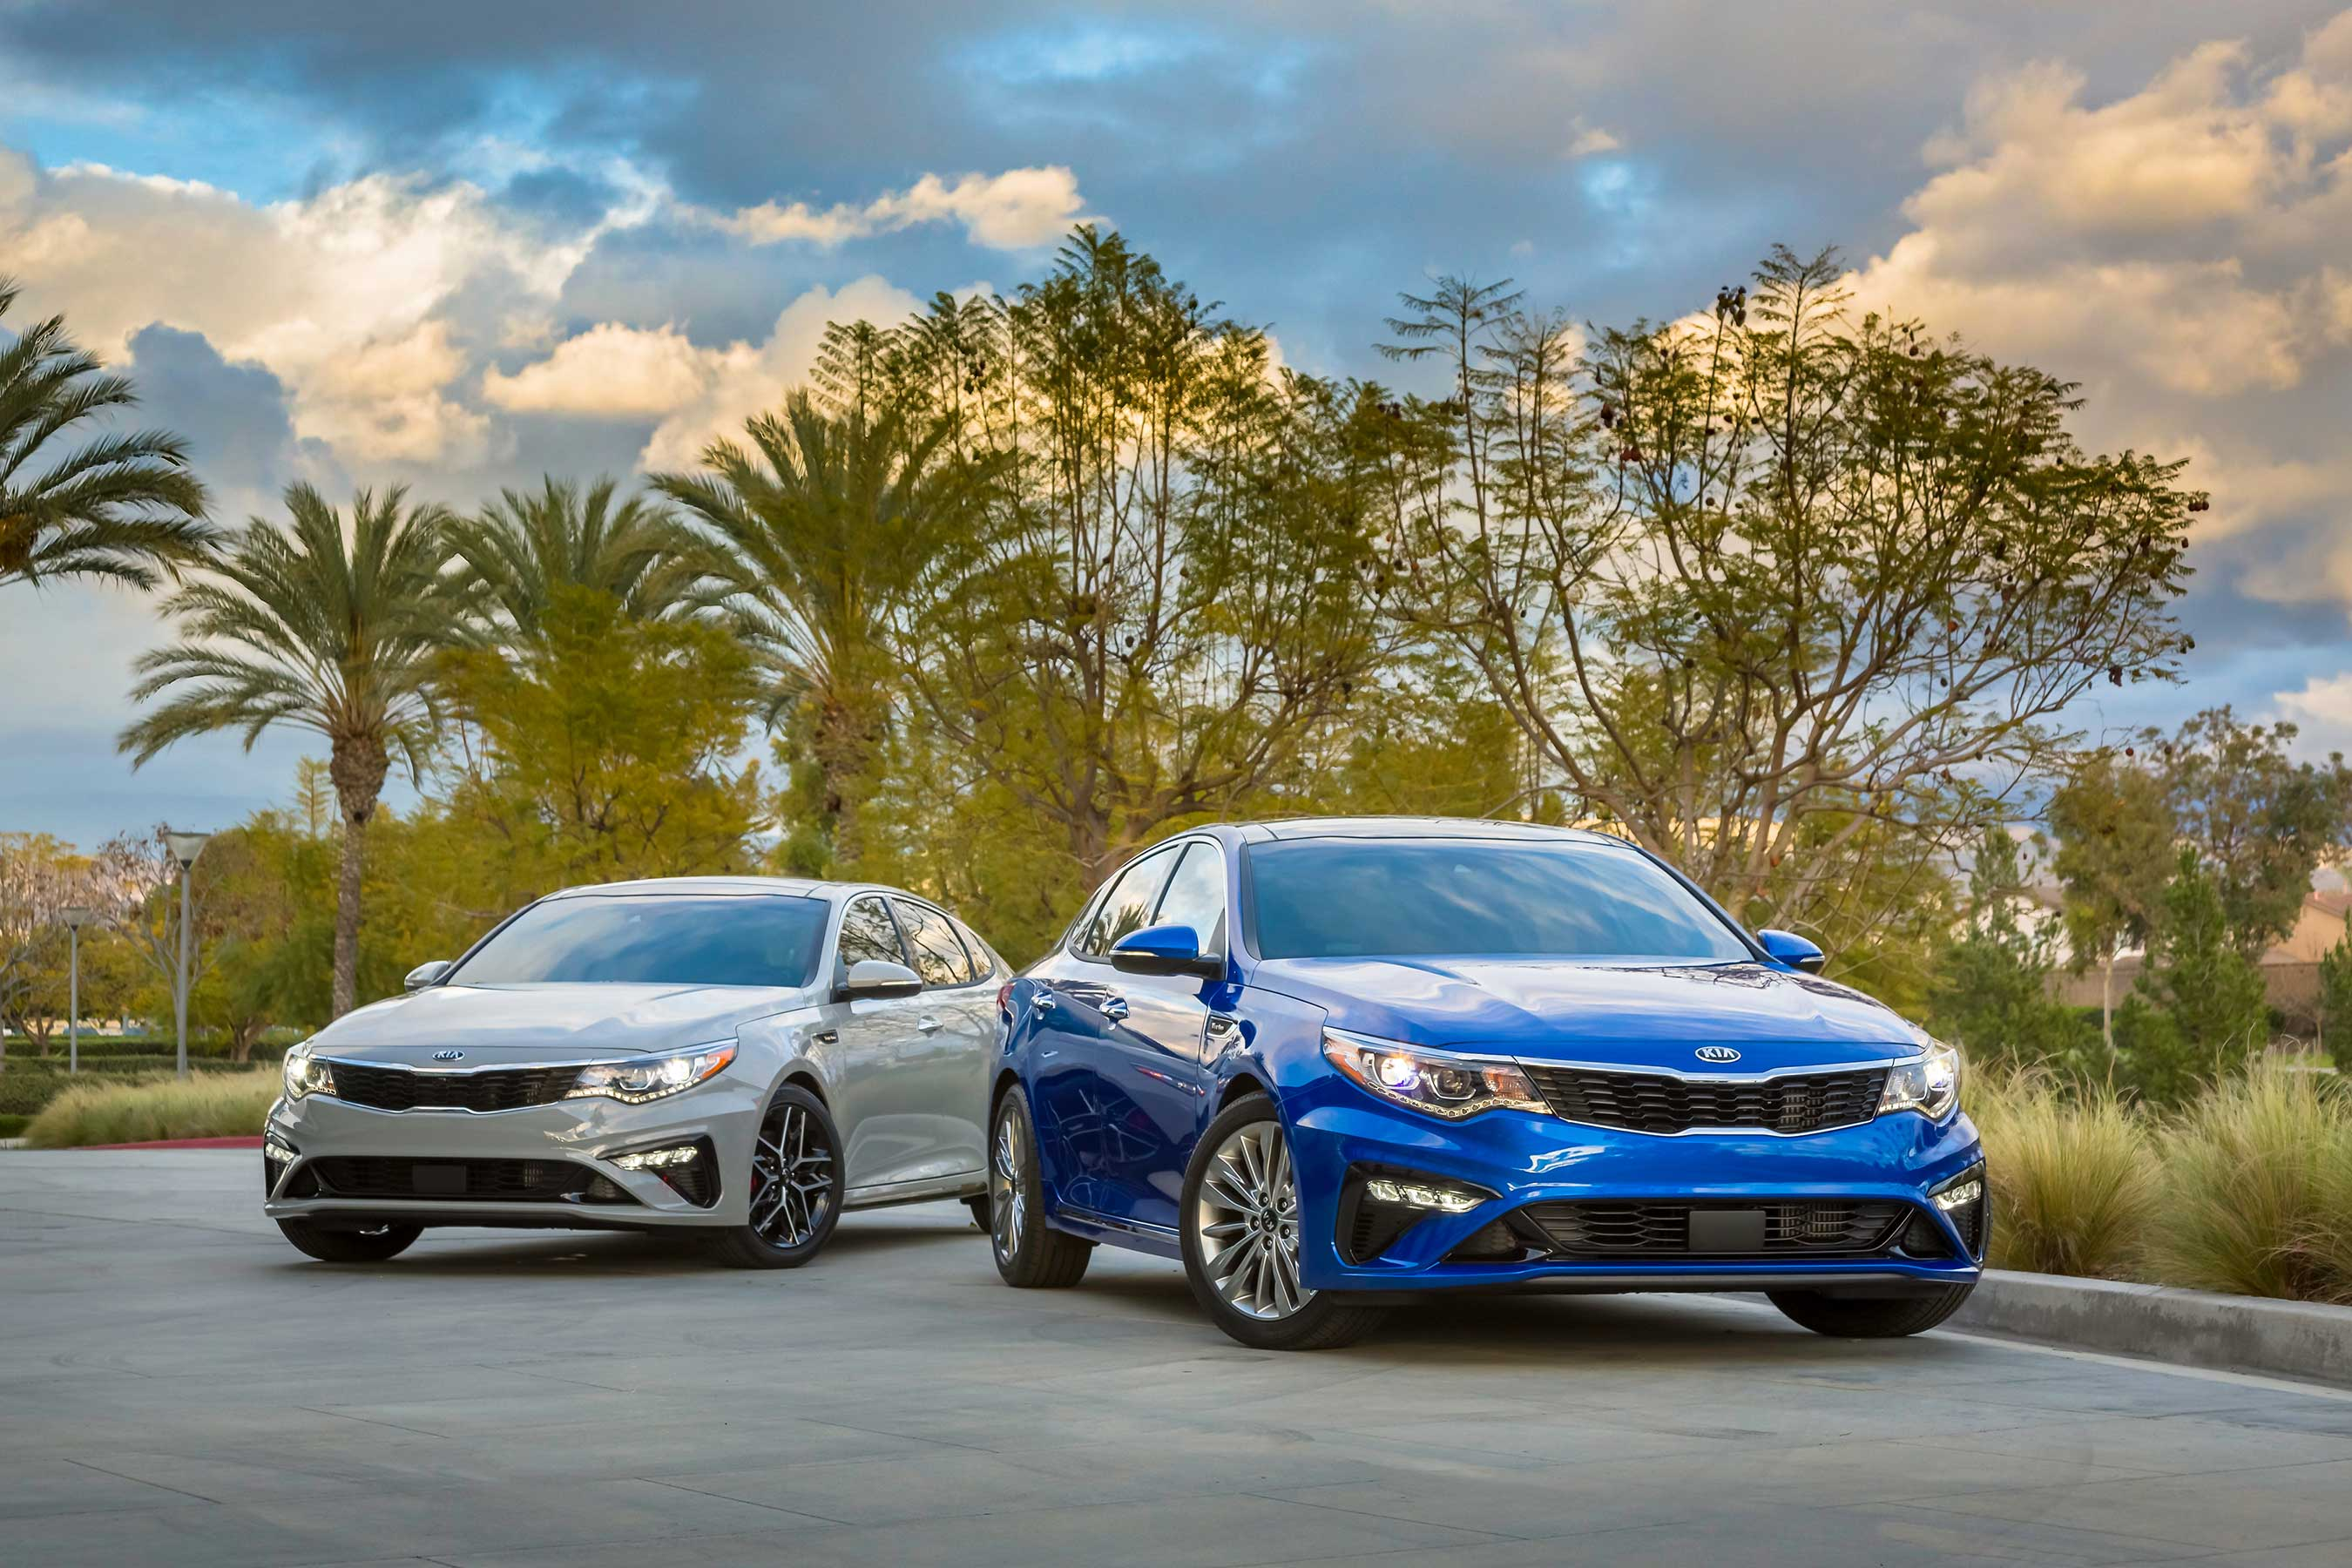 Refreshed 2019 Kia Optima debuts at New York International Auto Show.